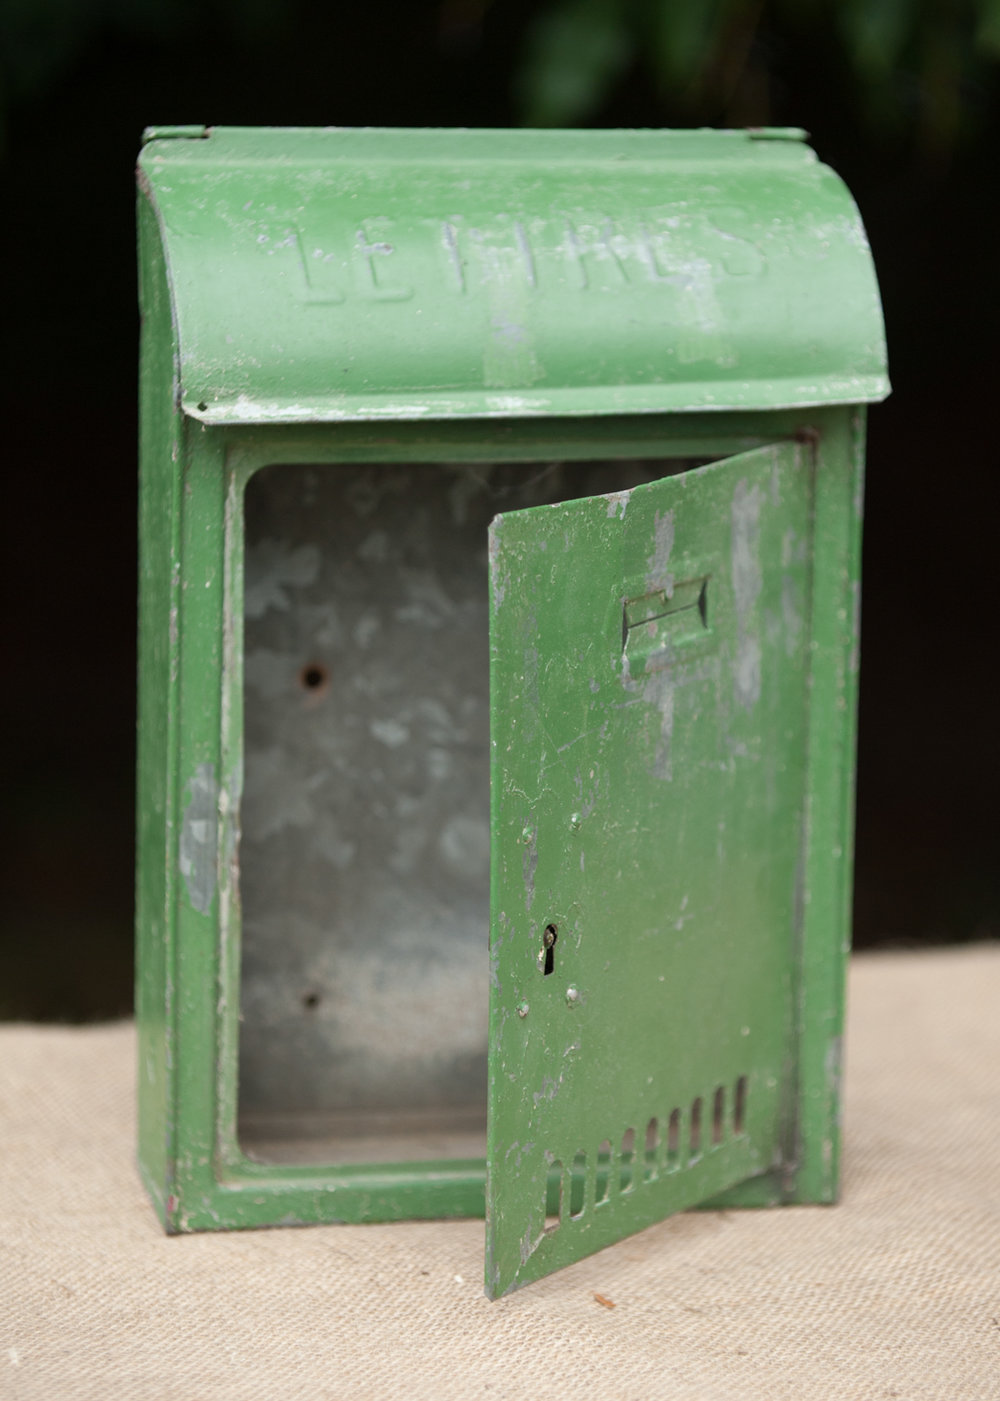 Old French postbox to be used as a card or message box - £5